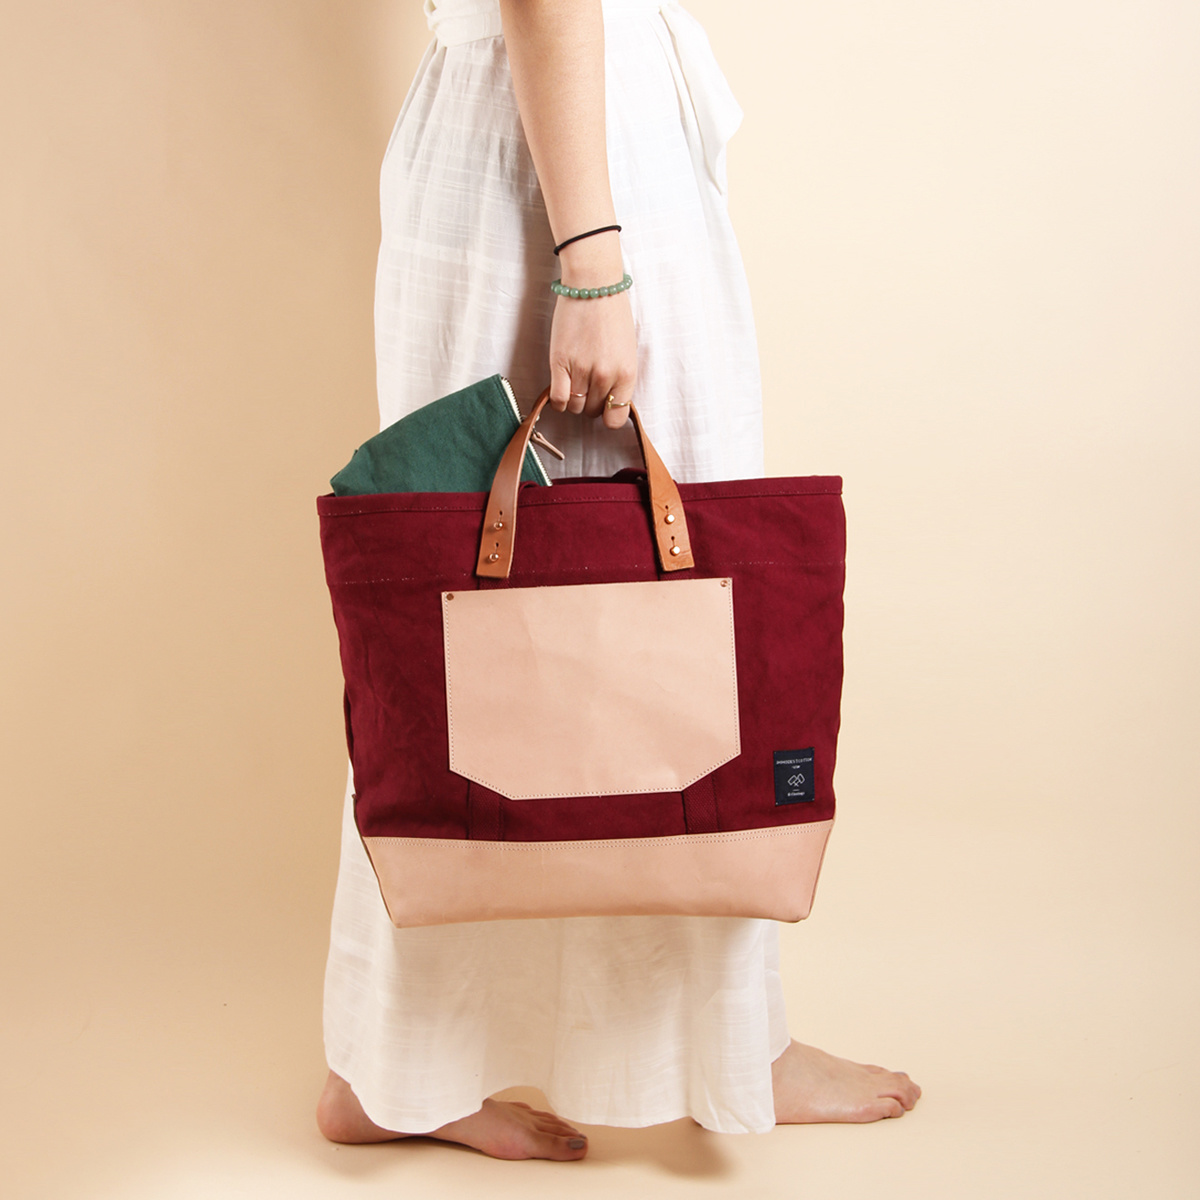 IMMODEST COTTON x Fleabags Immodest Cotton - Plum East West Bucket Tote